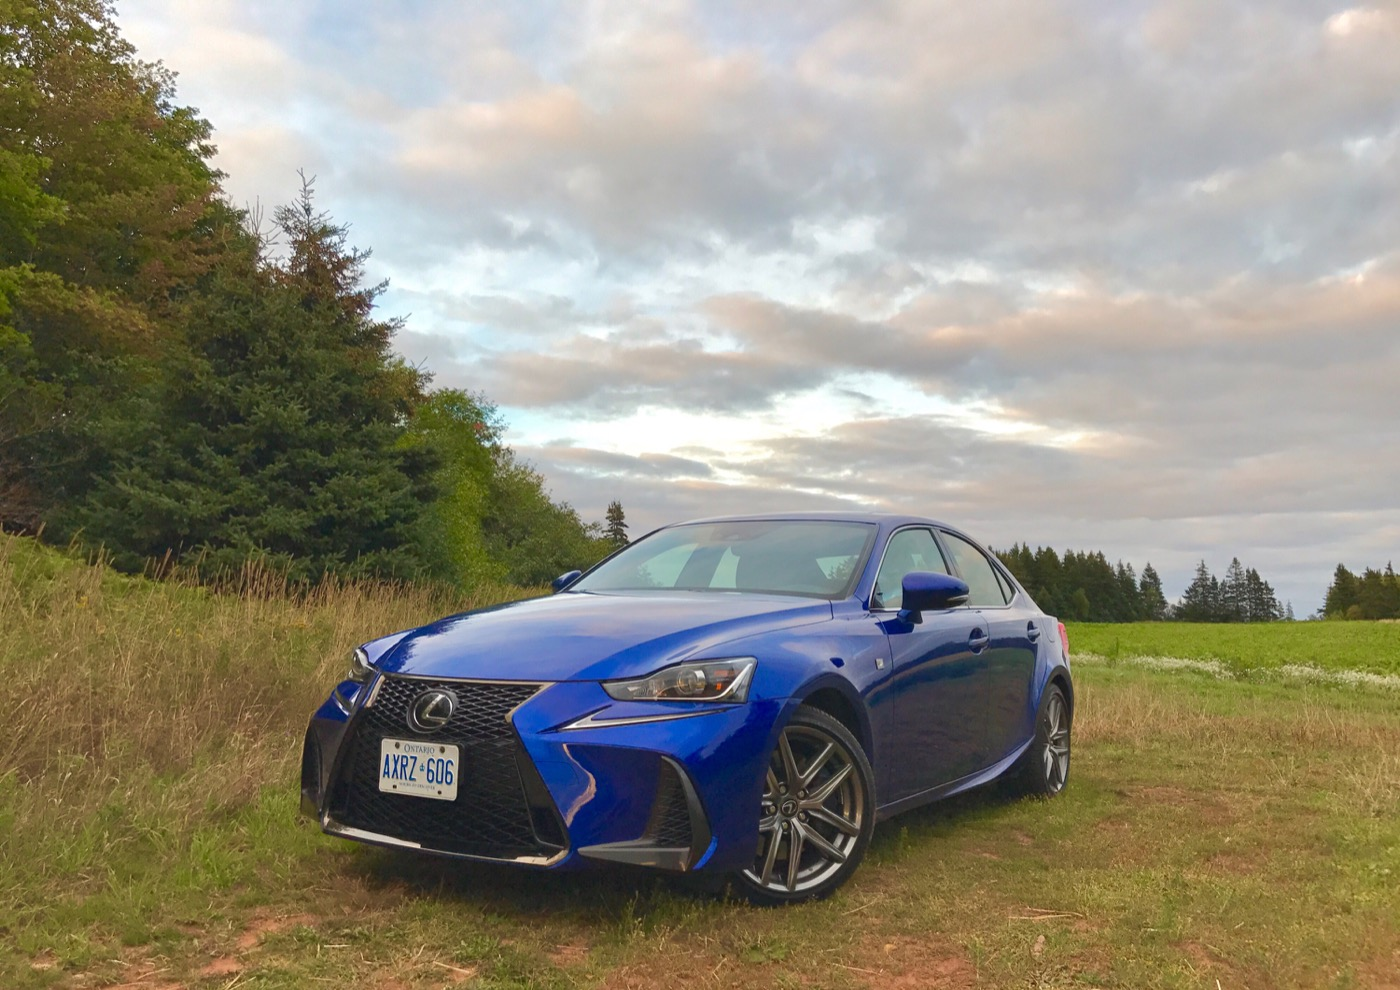 2017 lexus is350 review give love one more chance. Black Bedroom Furniture Sets. Home Design Ideas